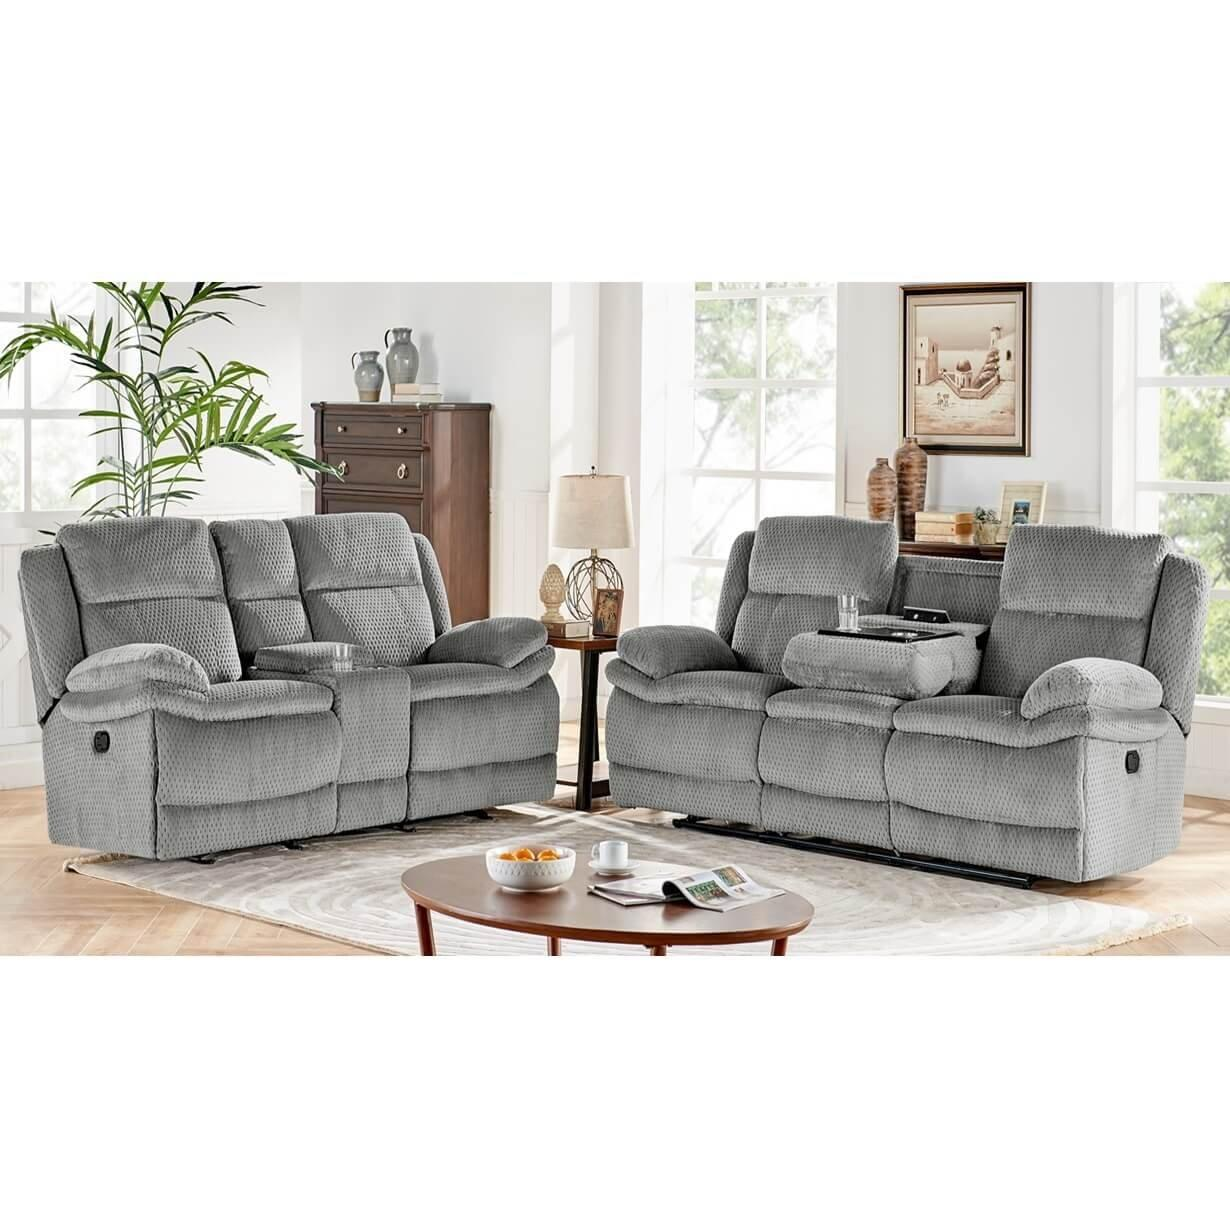 Rent To Own H317 2 Piece Smokey Reclining Sofa Reclining Console Loveseat Set At Aaron S Today